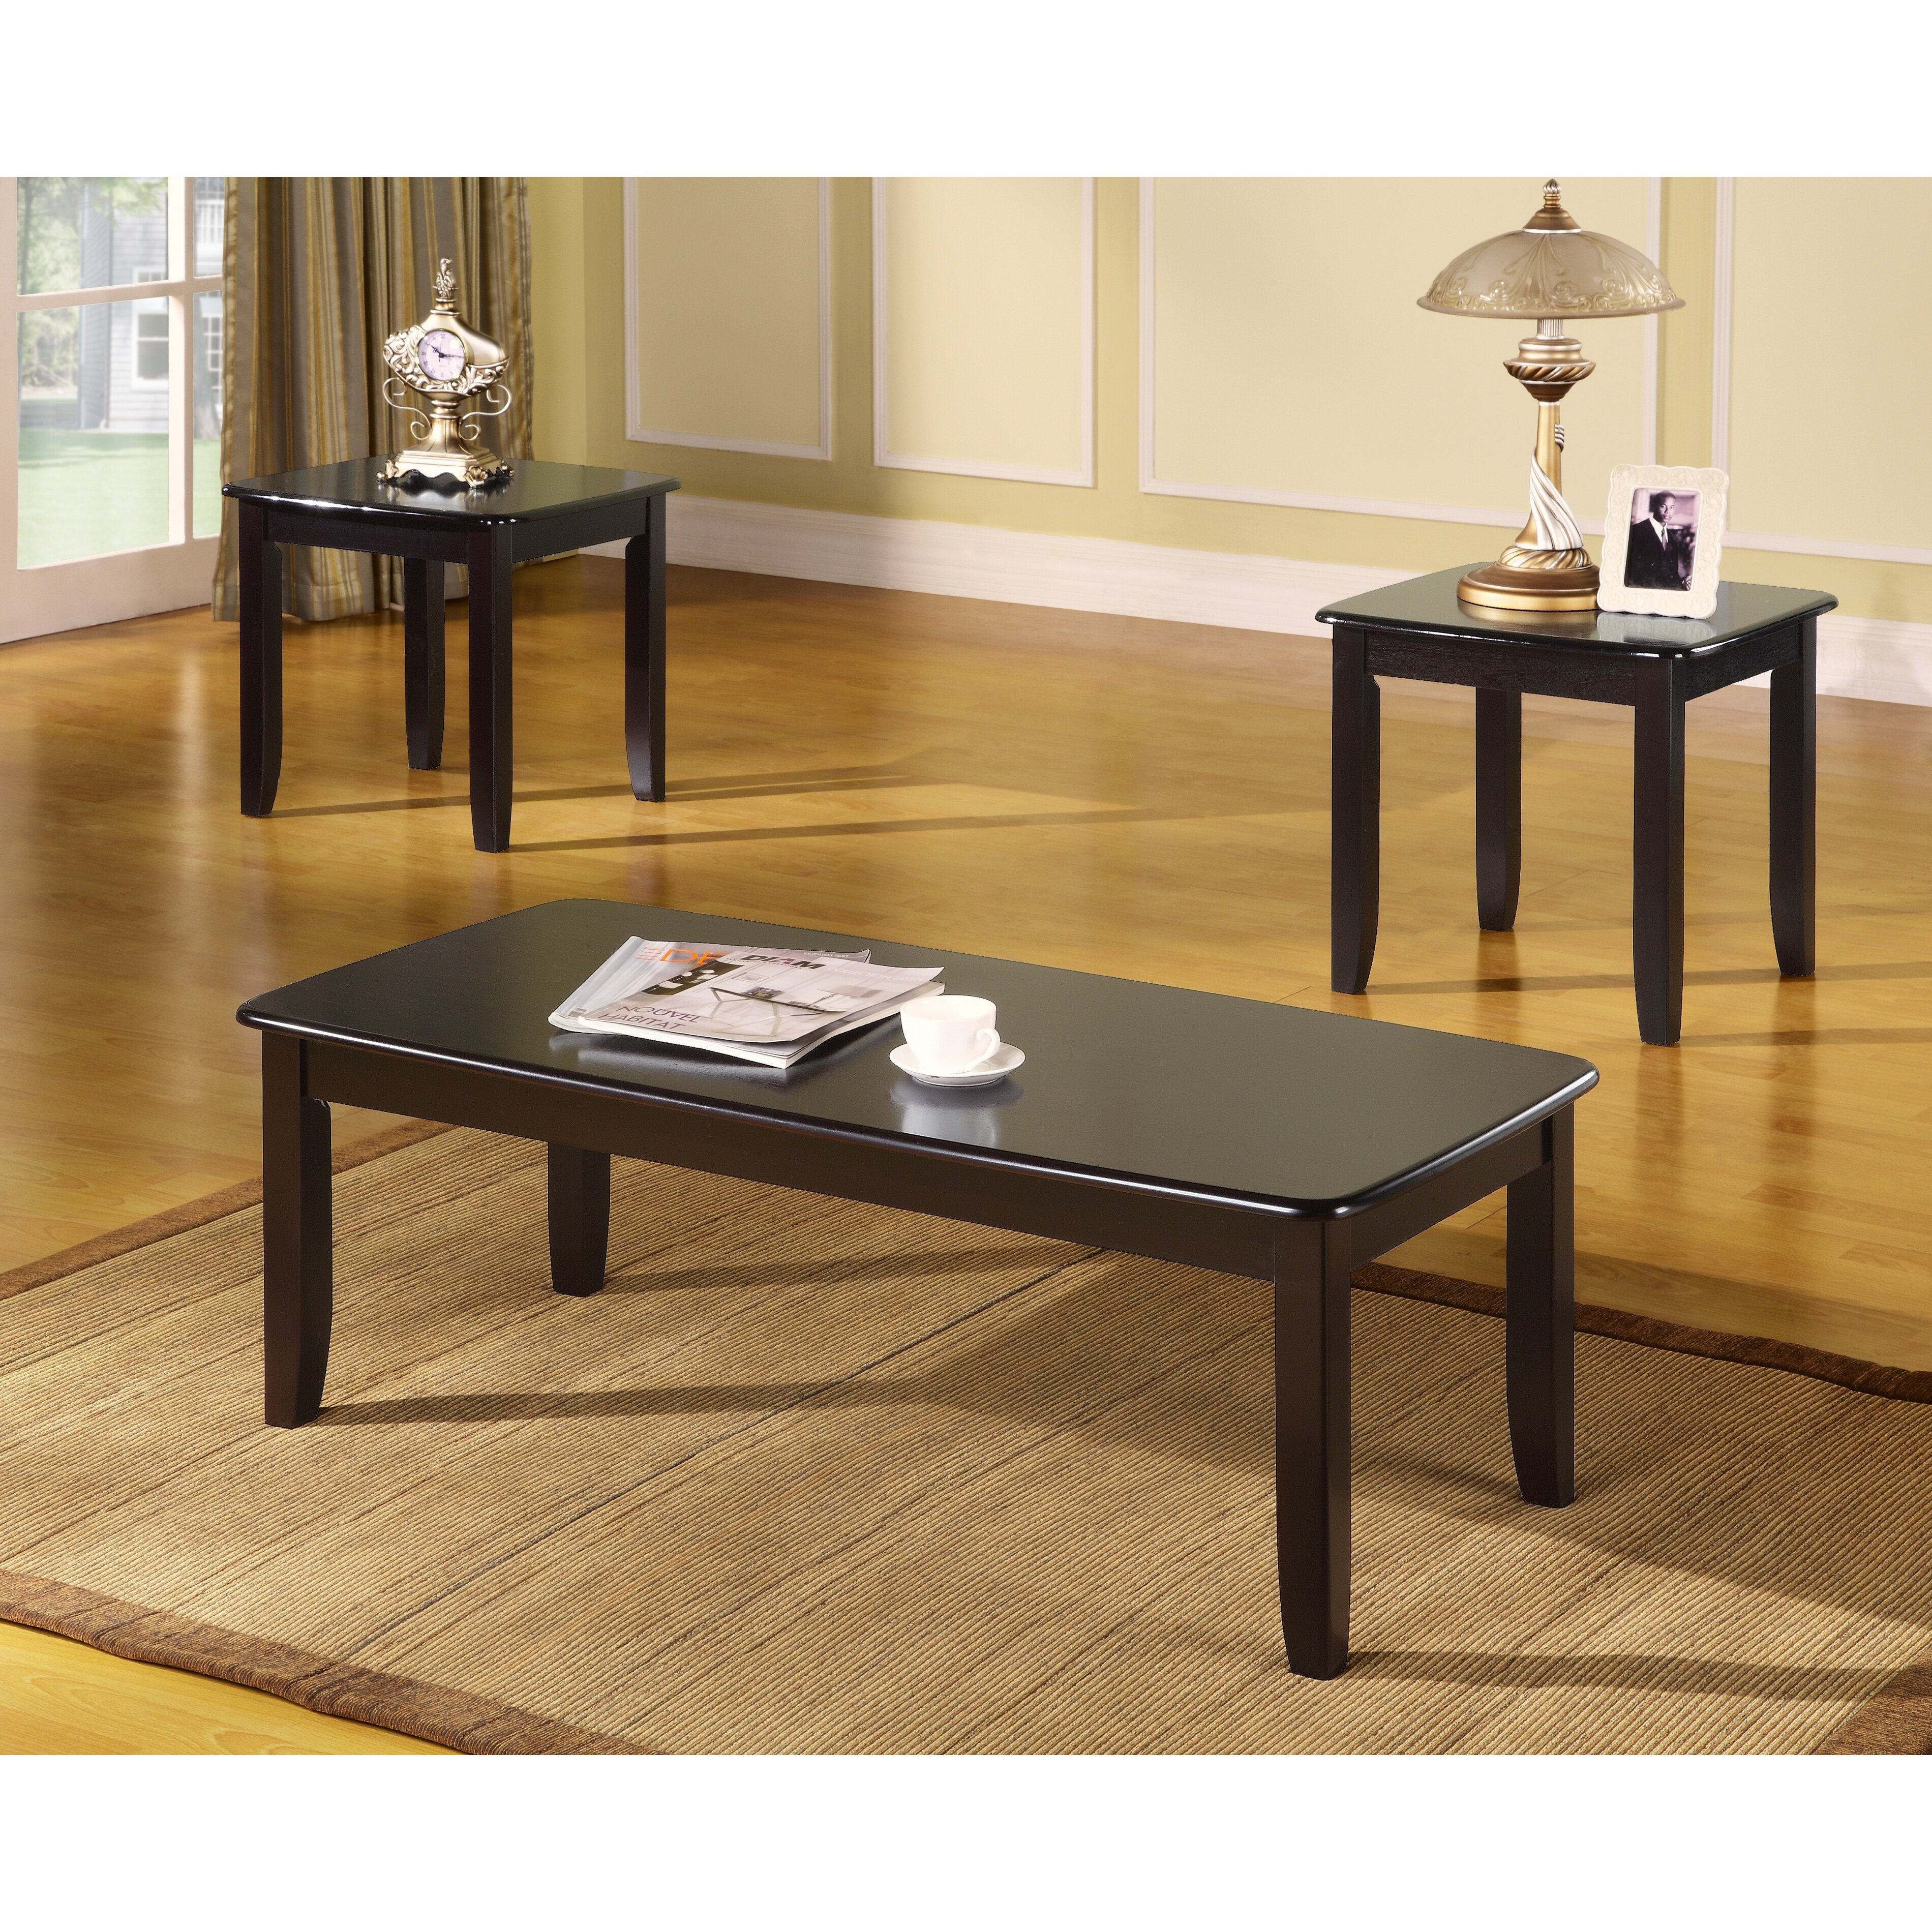 Veropeso 3 Piece Coffee Table Set: Milton Green Star 3 Piece Coffee Table Set & Reviews